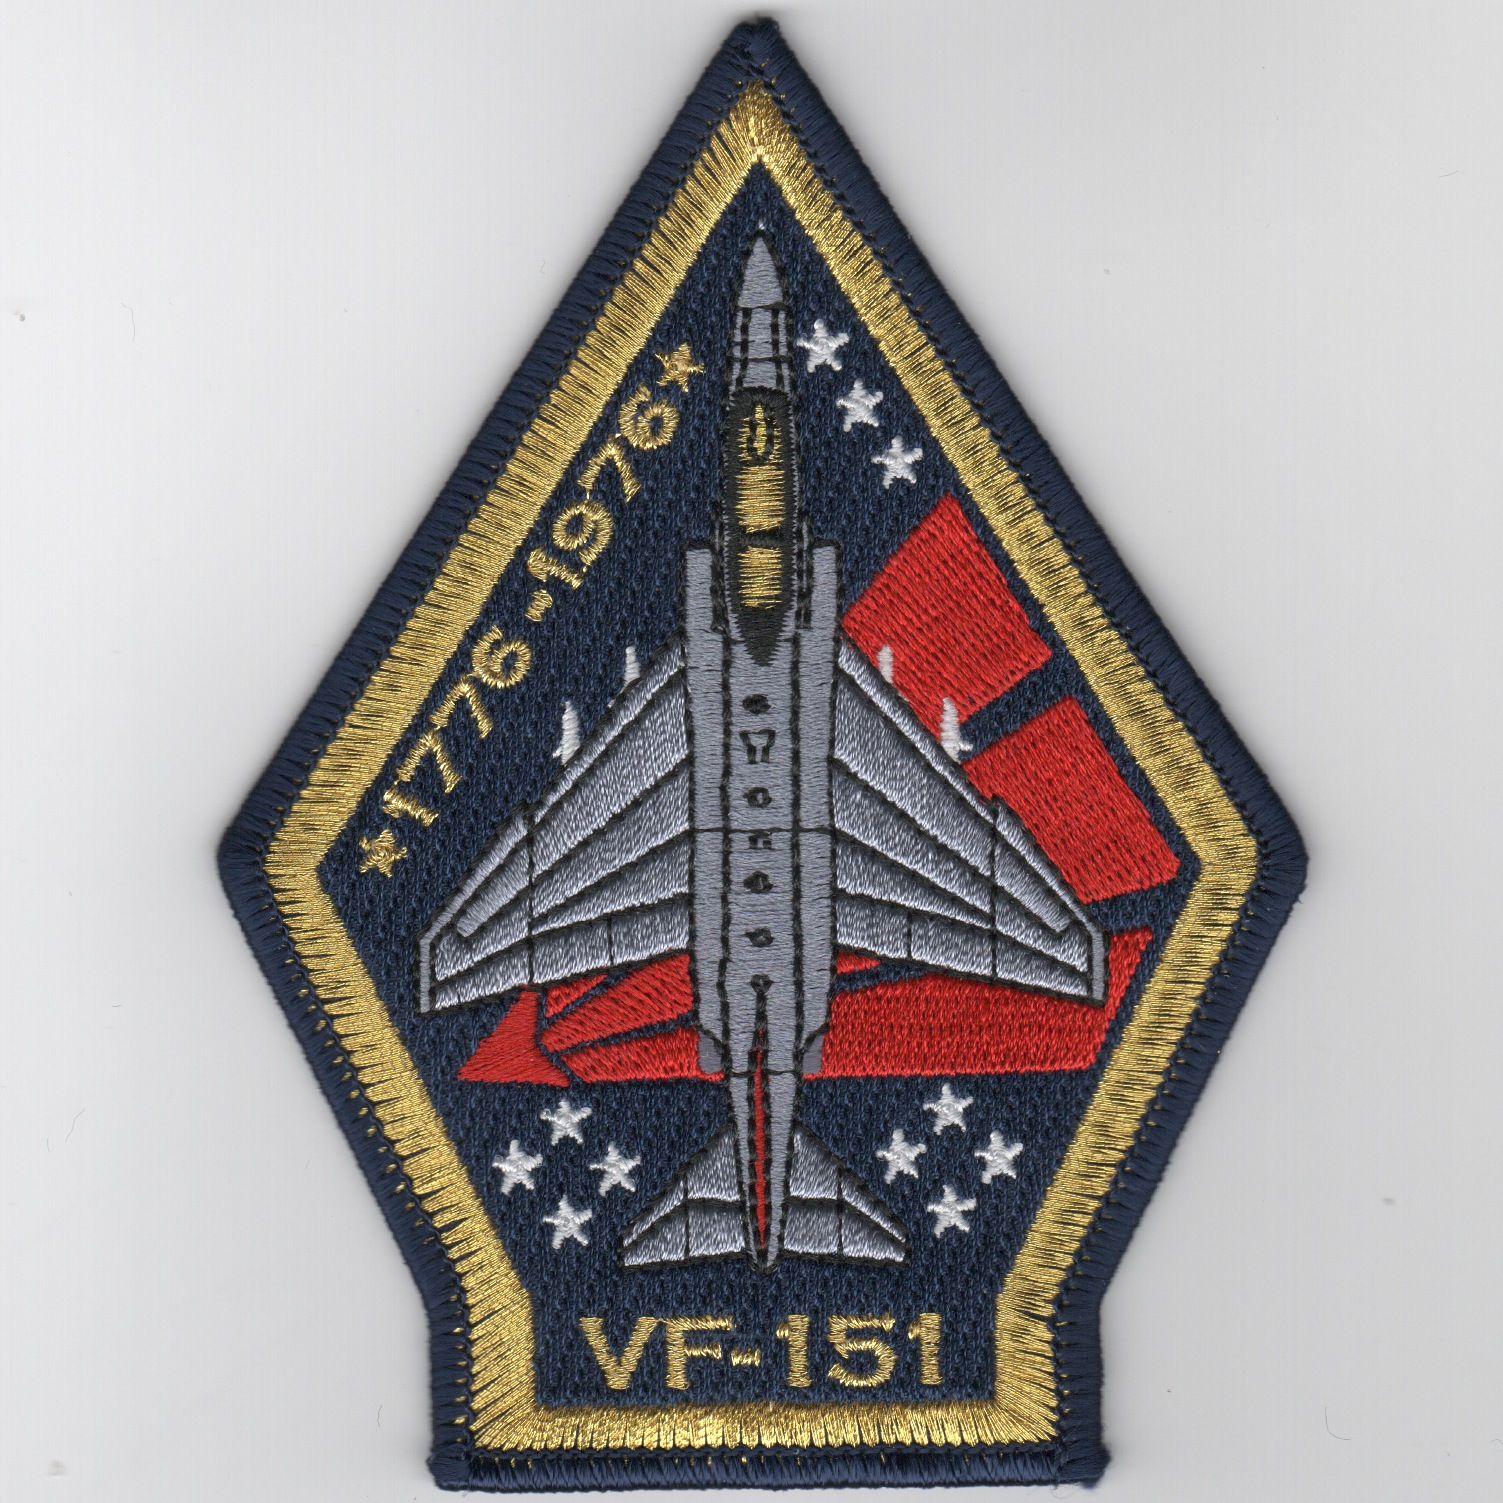 VF-151 F-4 'Coffin' Bicentennial Patch (R/B)